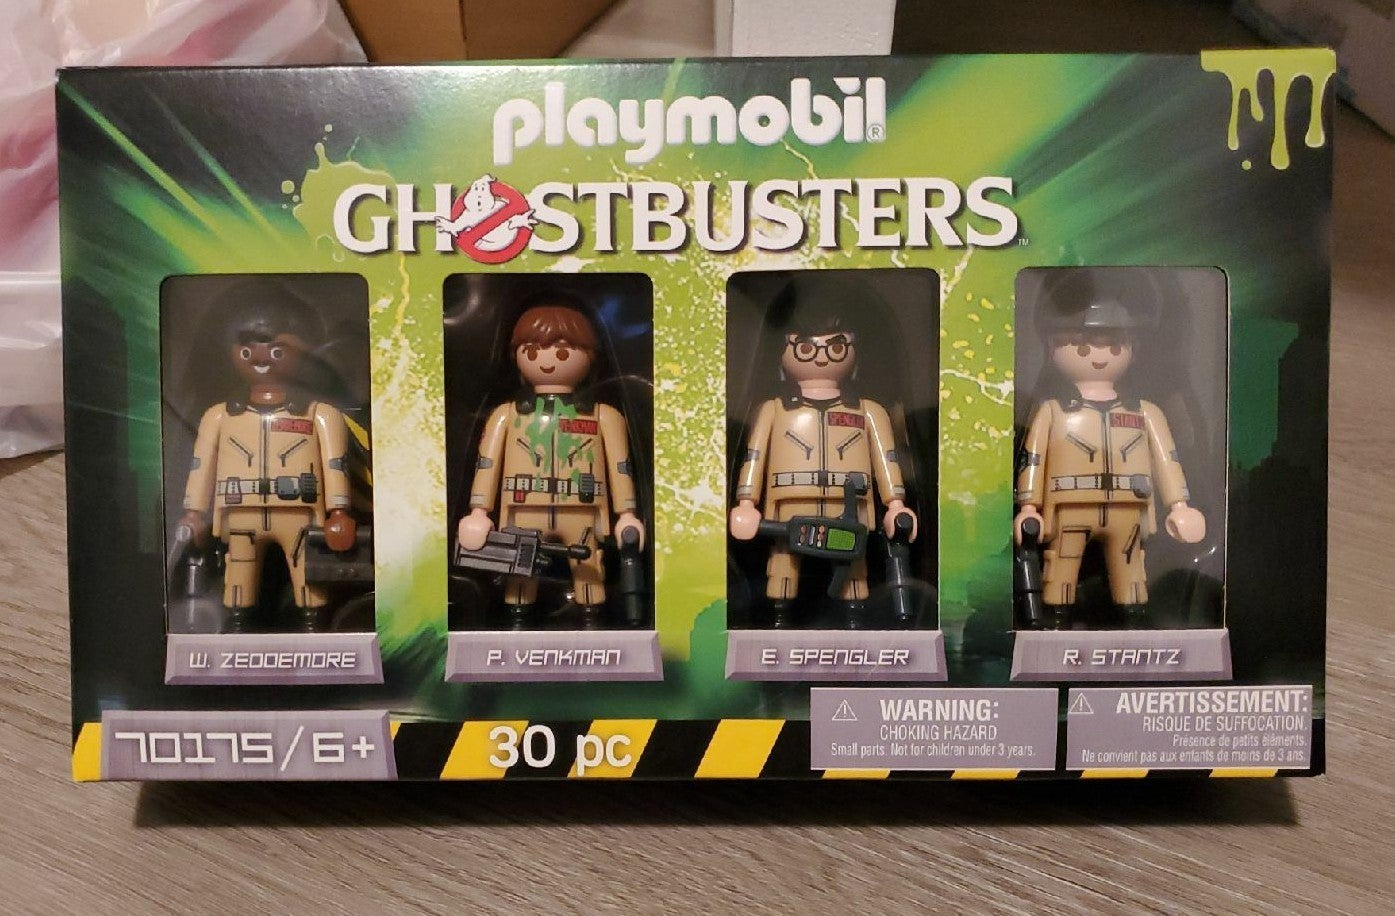 Playmobil Ghostbusters figures